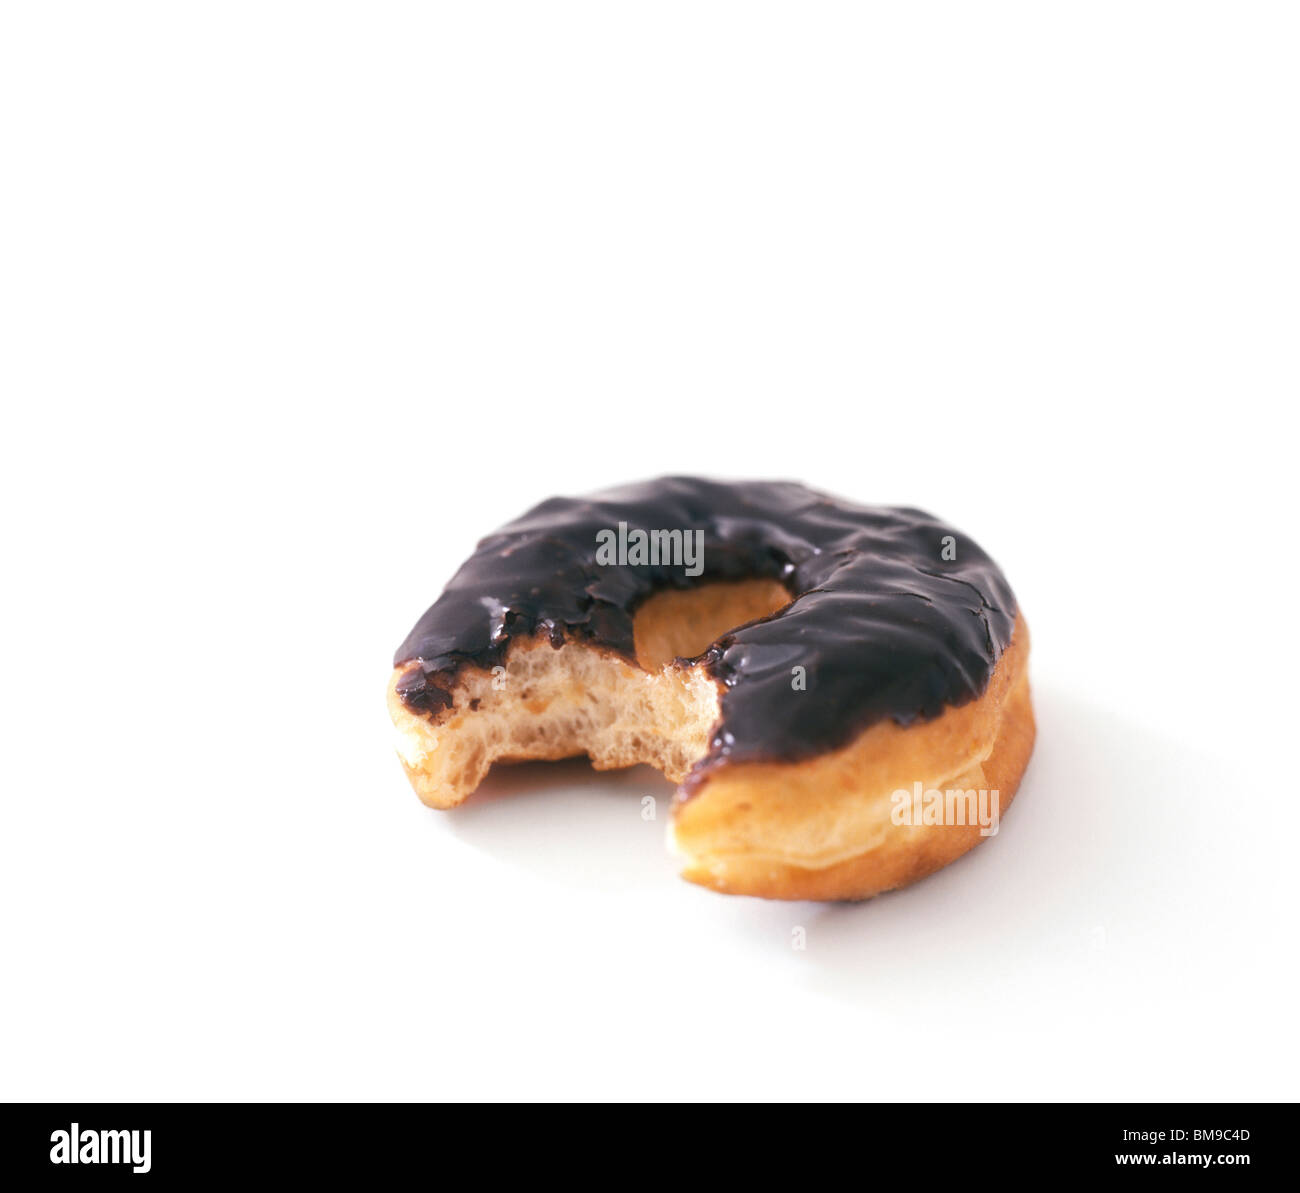 Still-lie of a Chocolate Donut with bite taken out - Stock Image